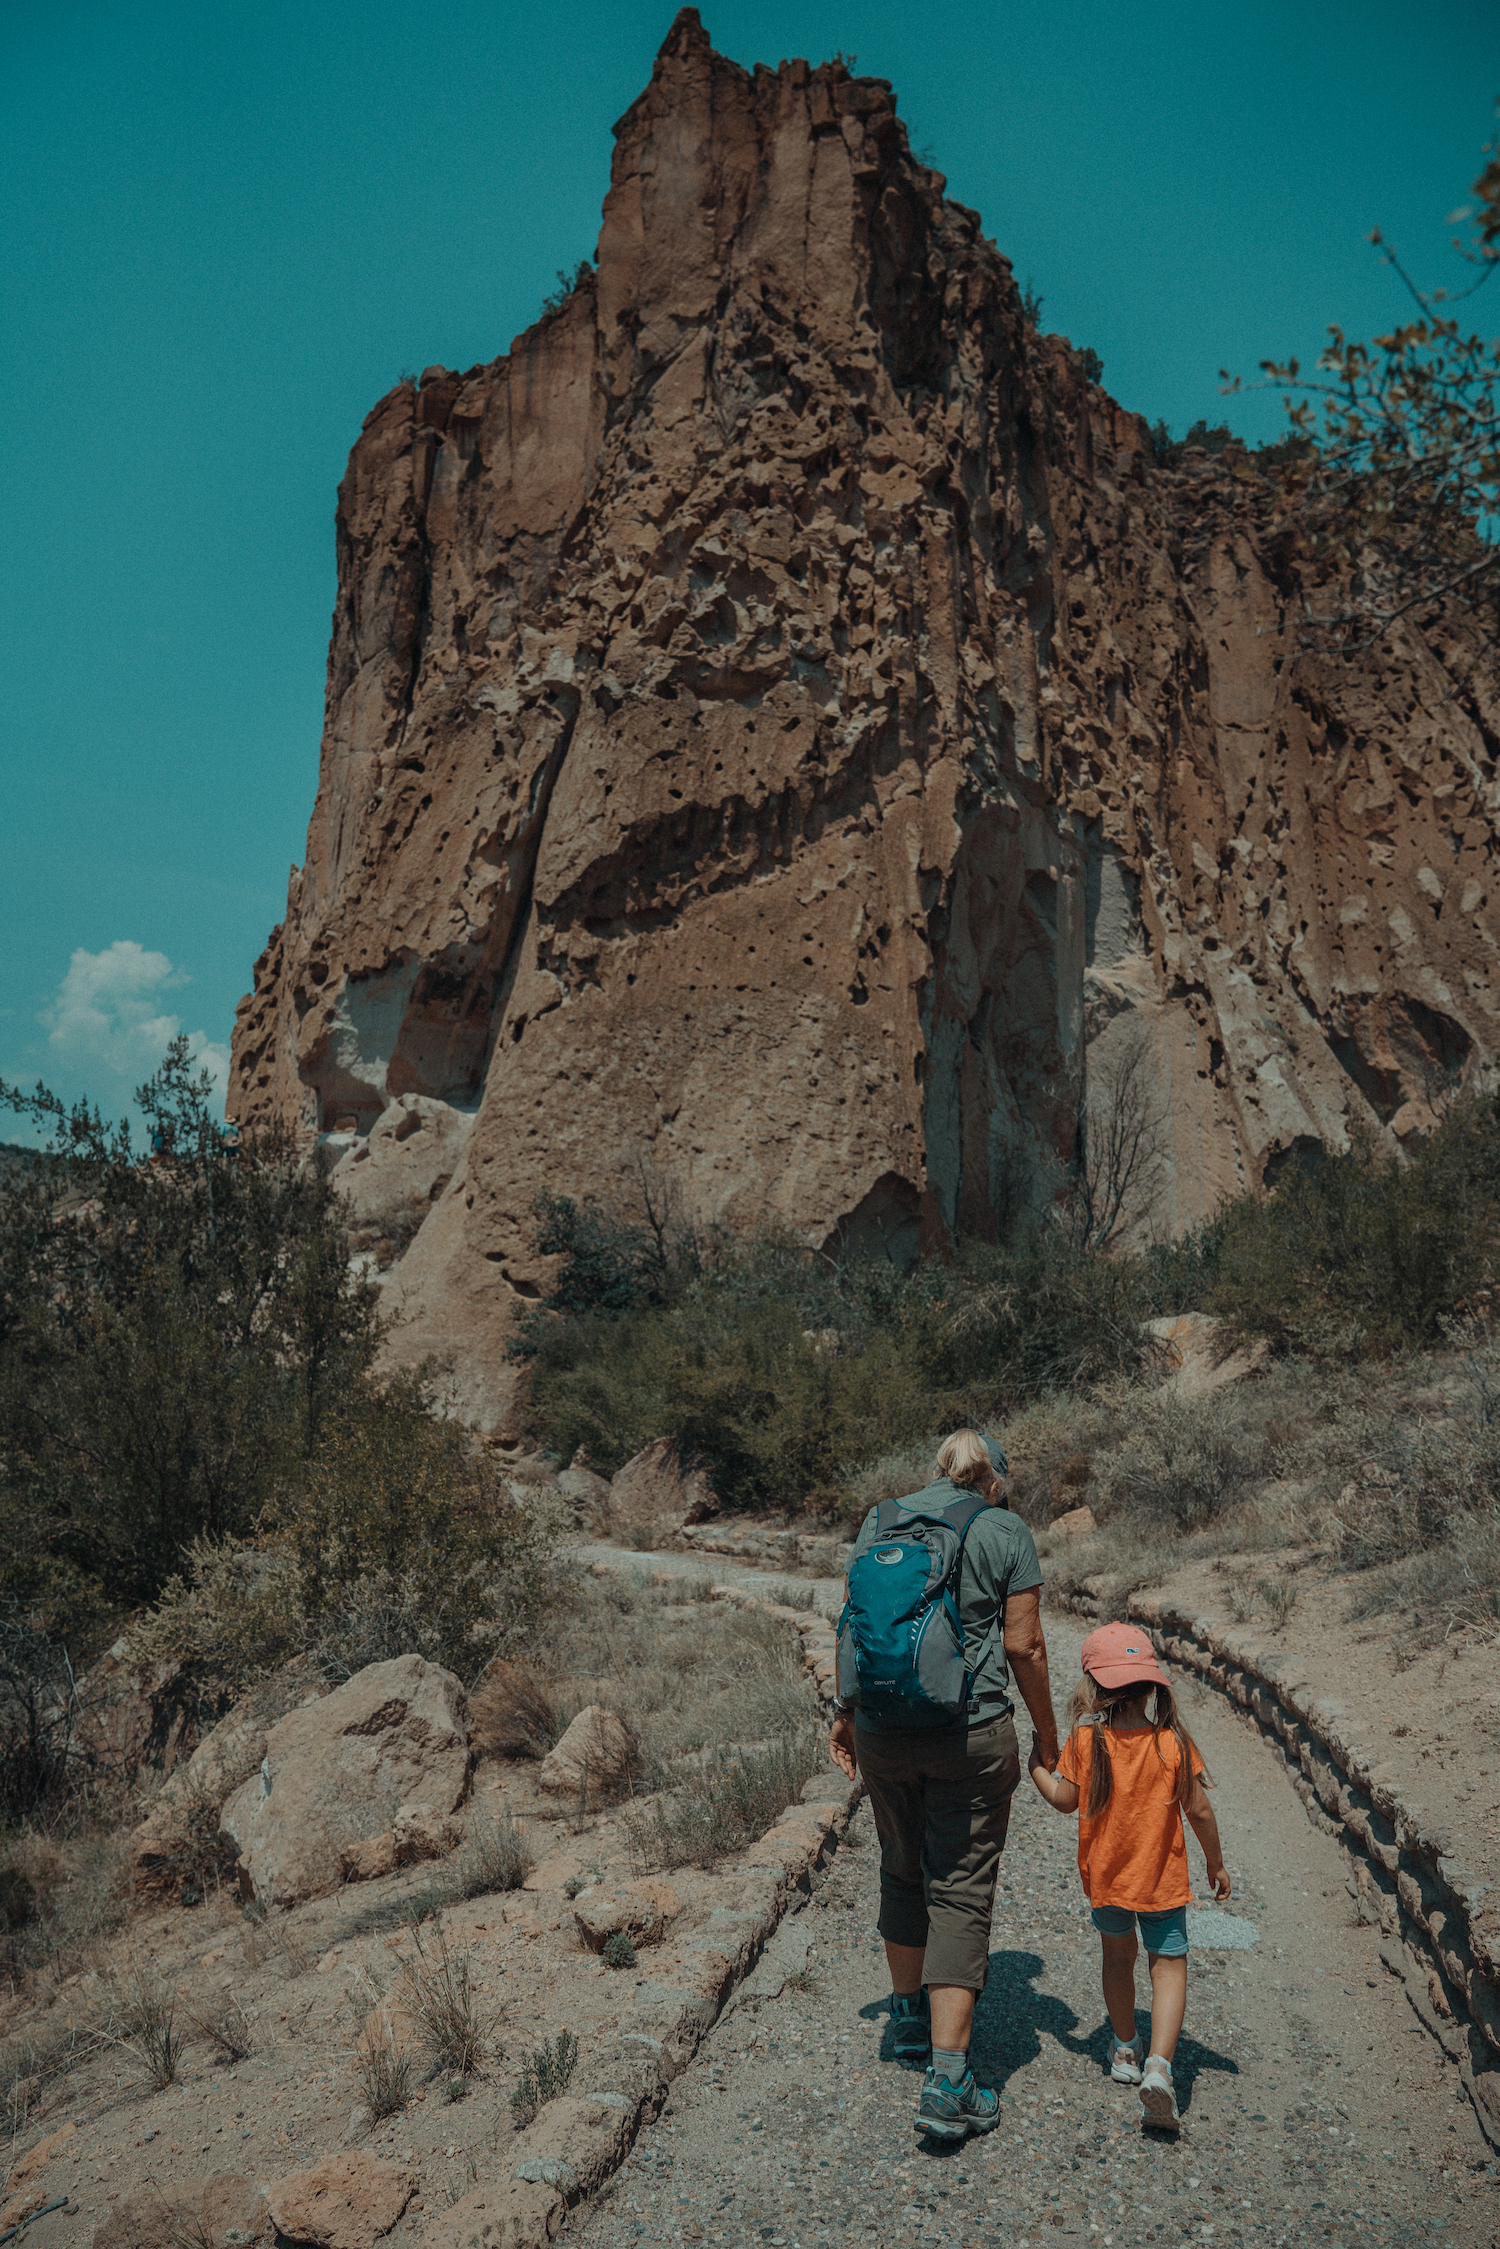 Two people walking towards a Santa Fe rock